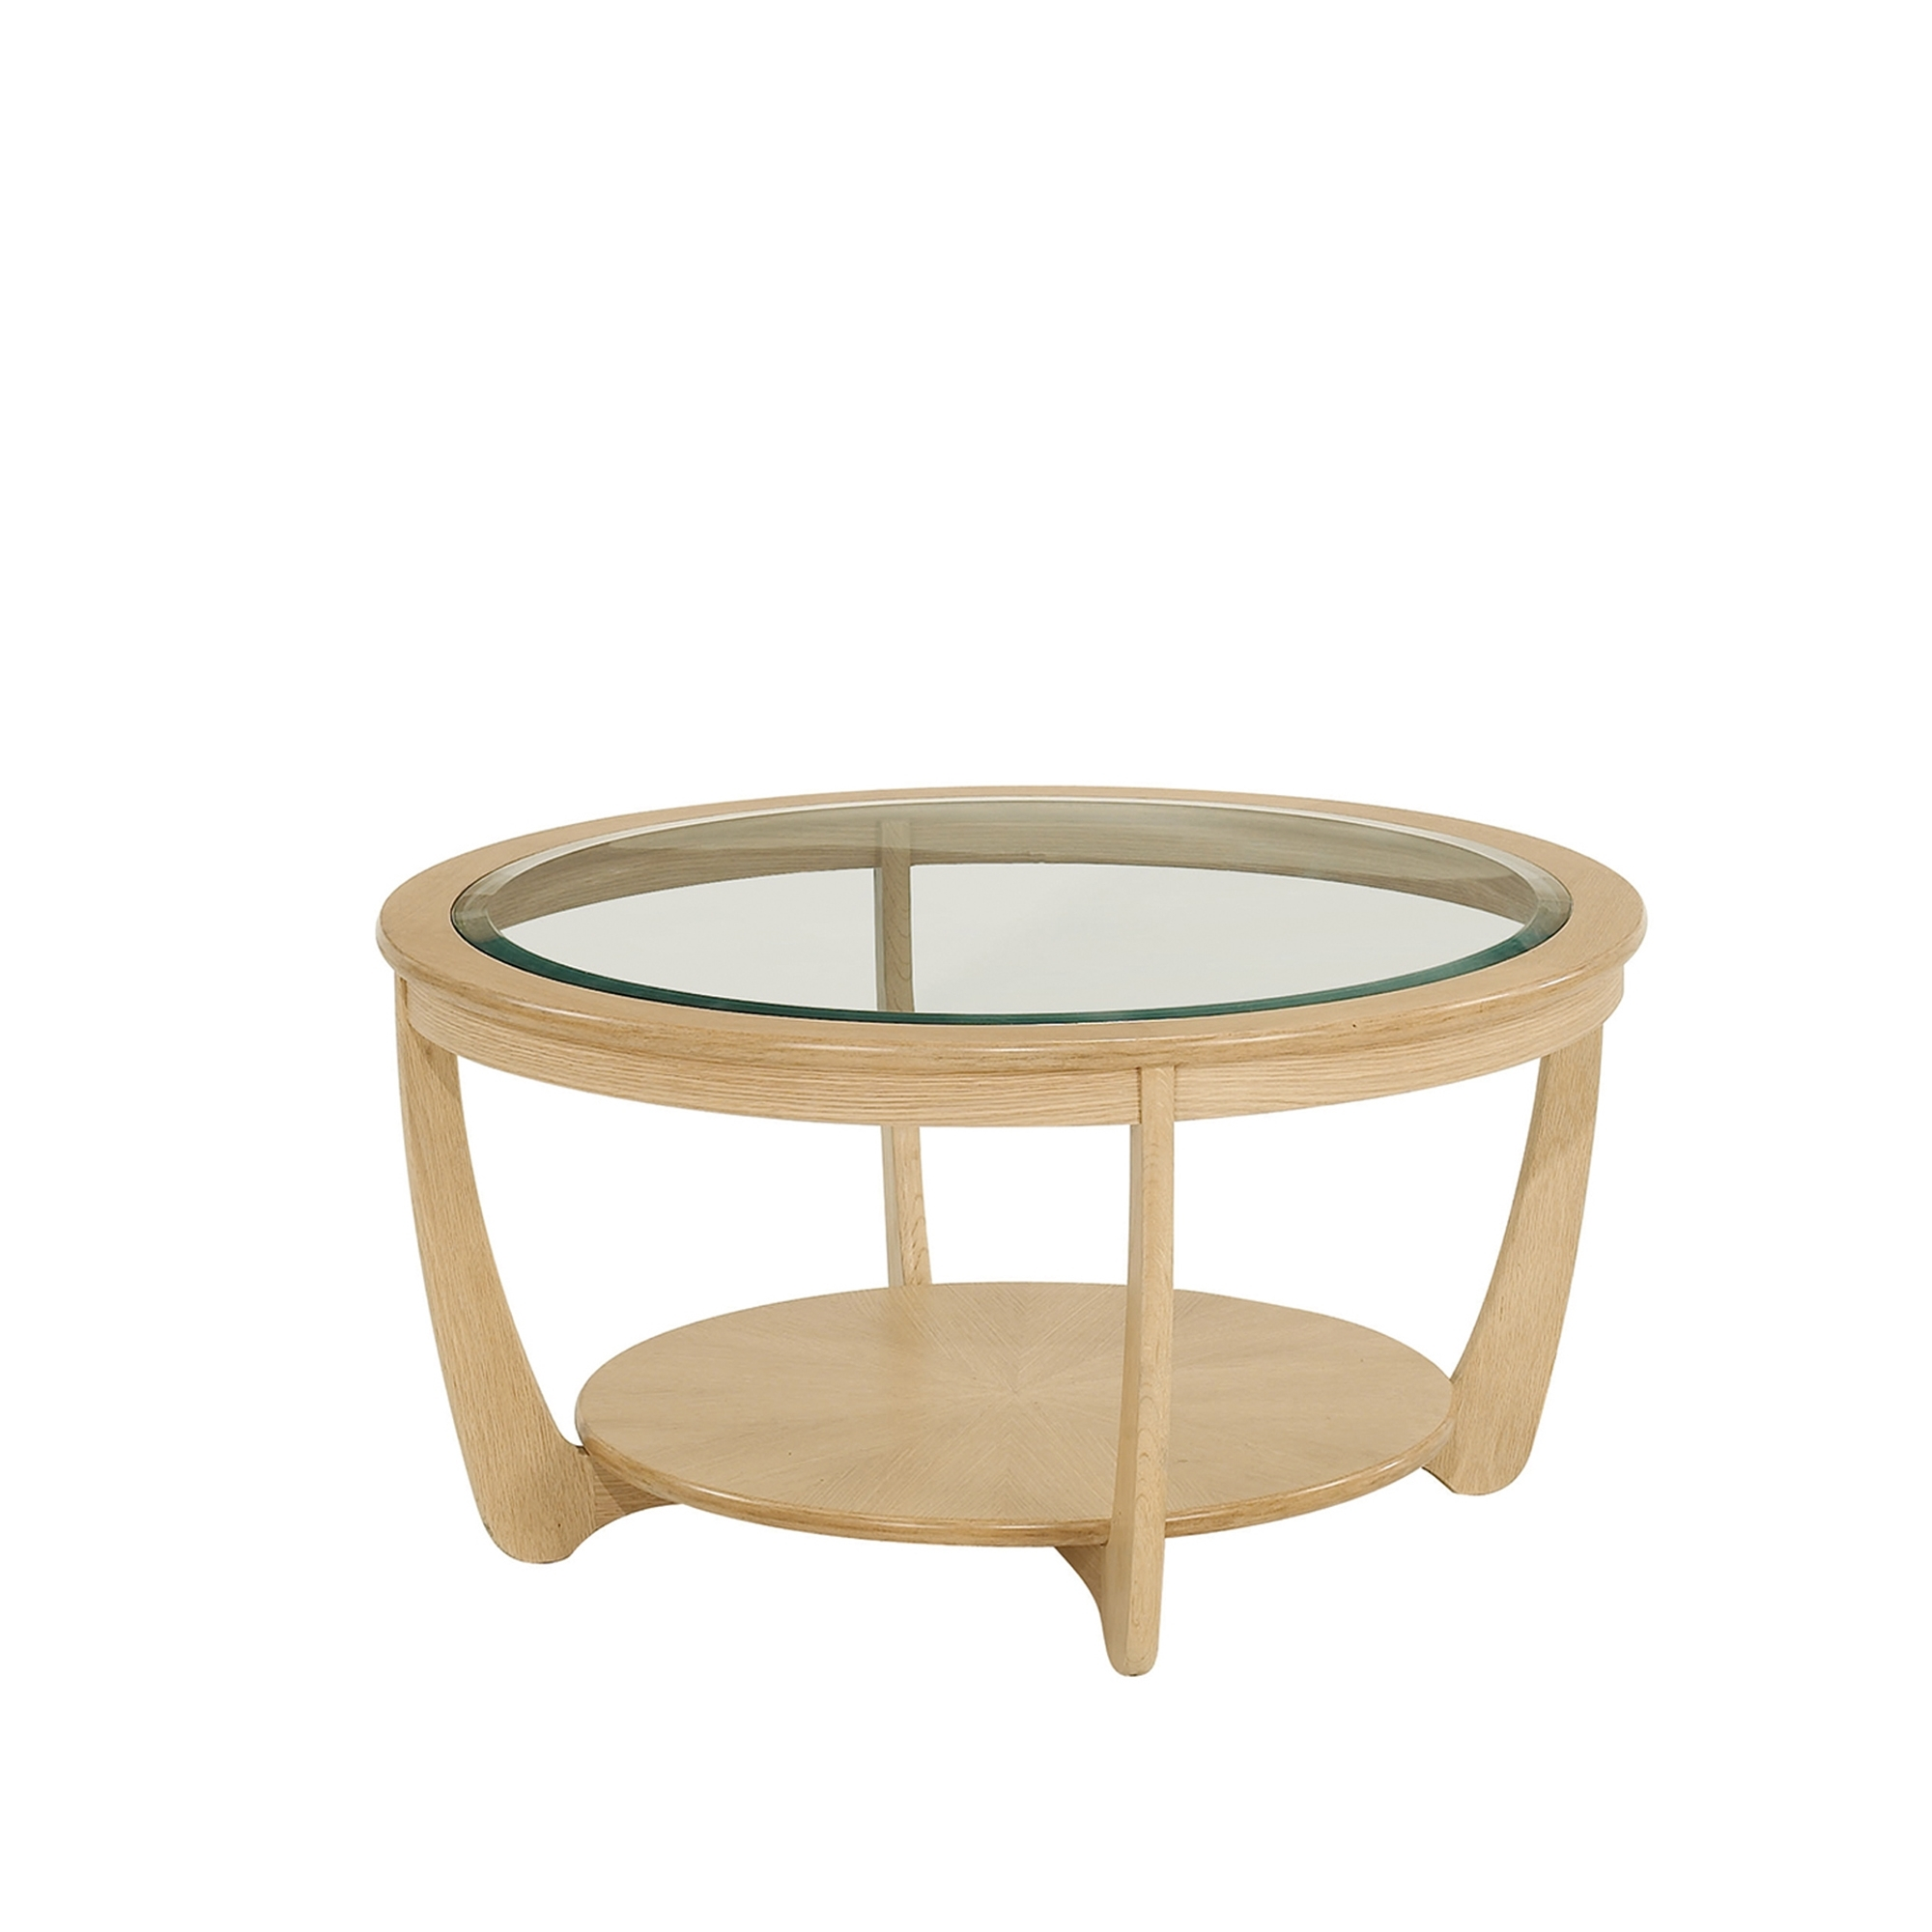 Nathan shades oak glass top round coffee table coffee for Round glass coffee table top